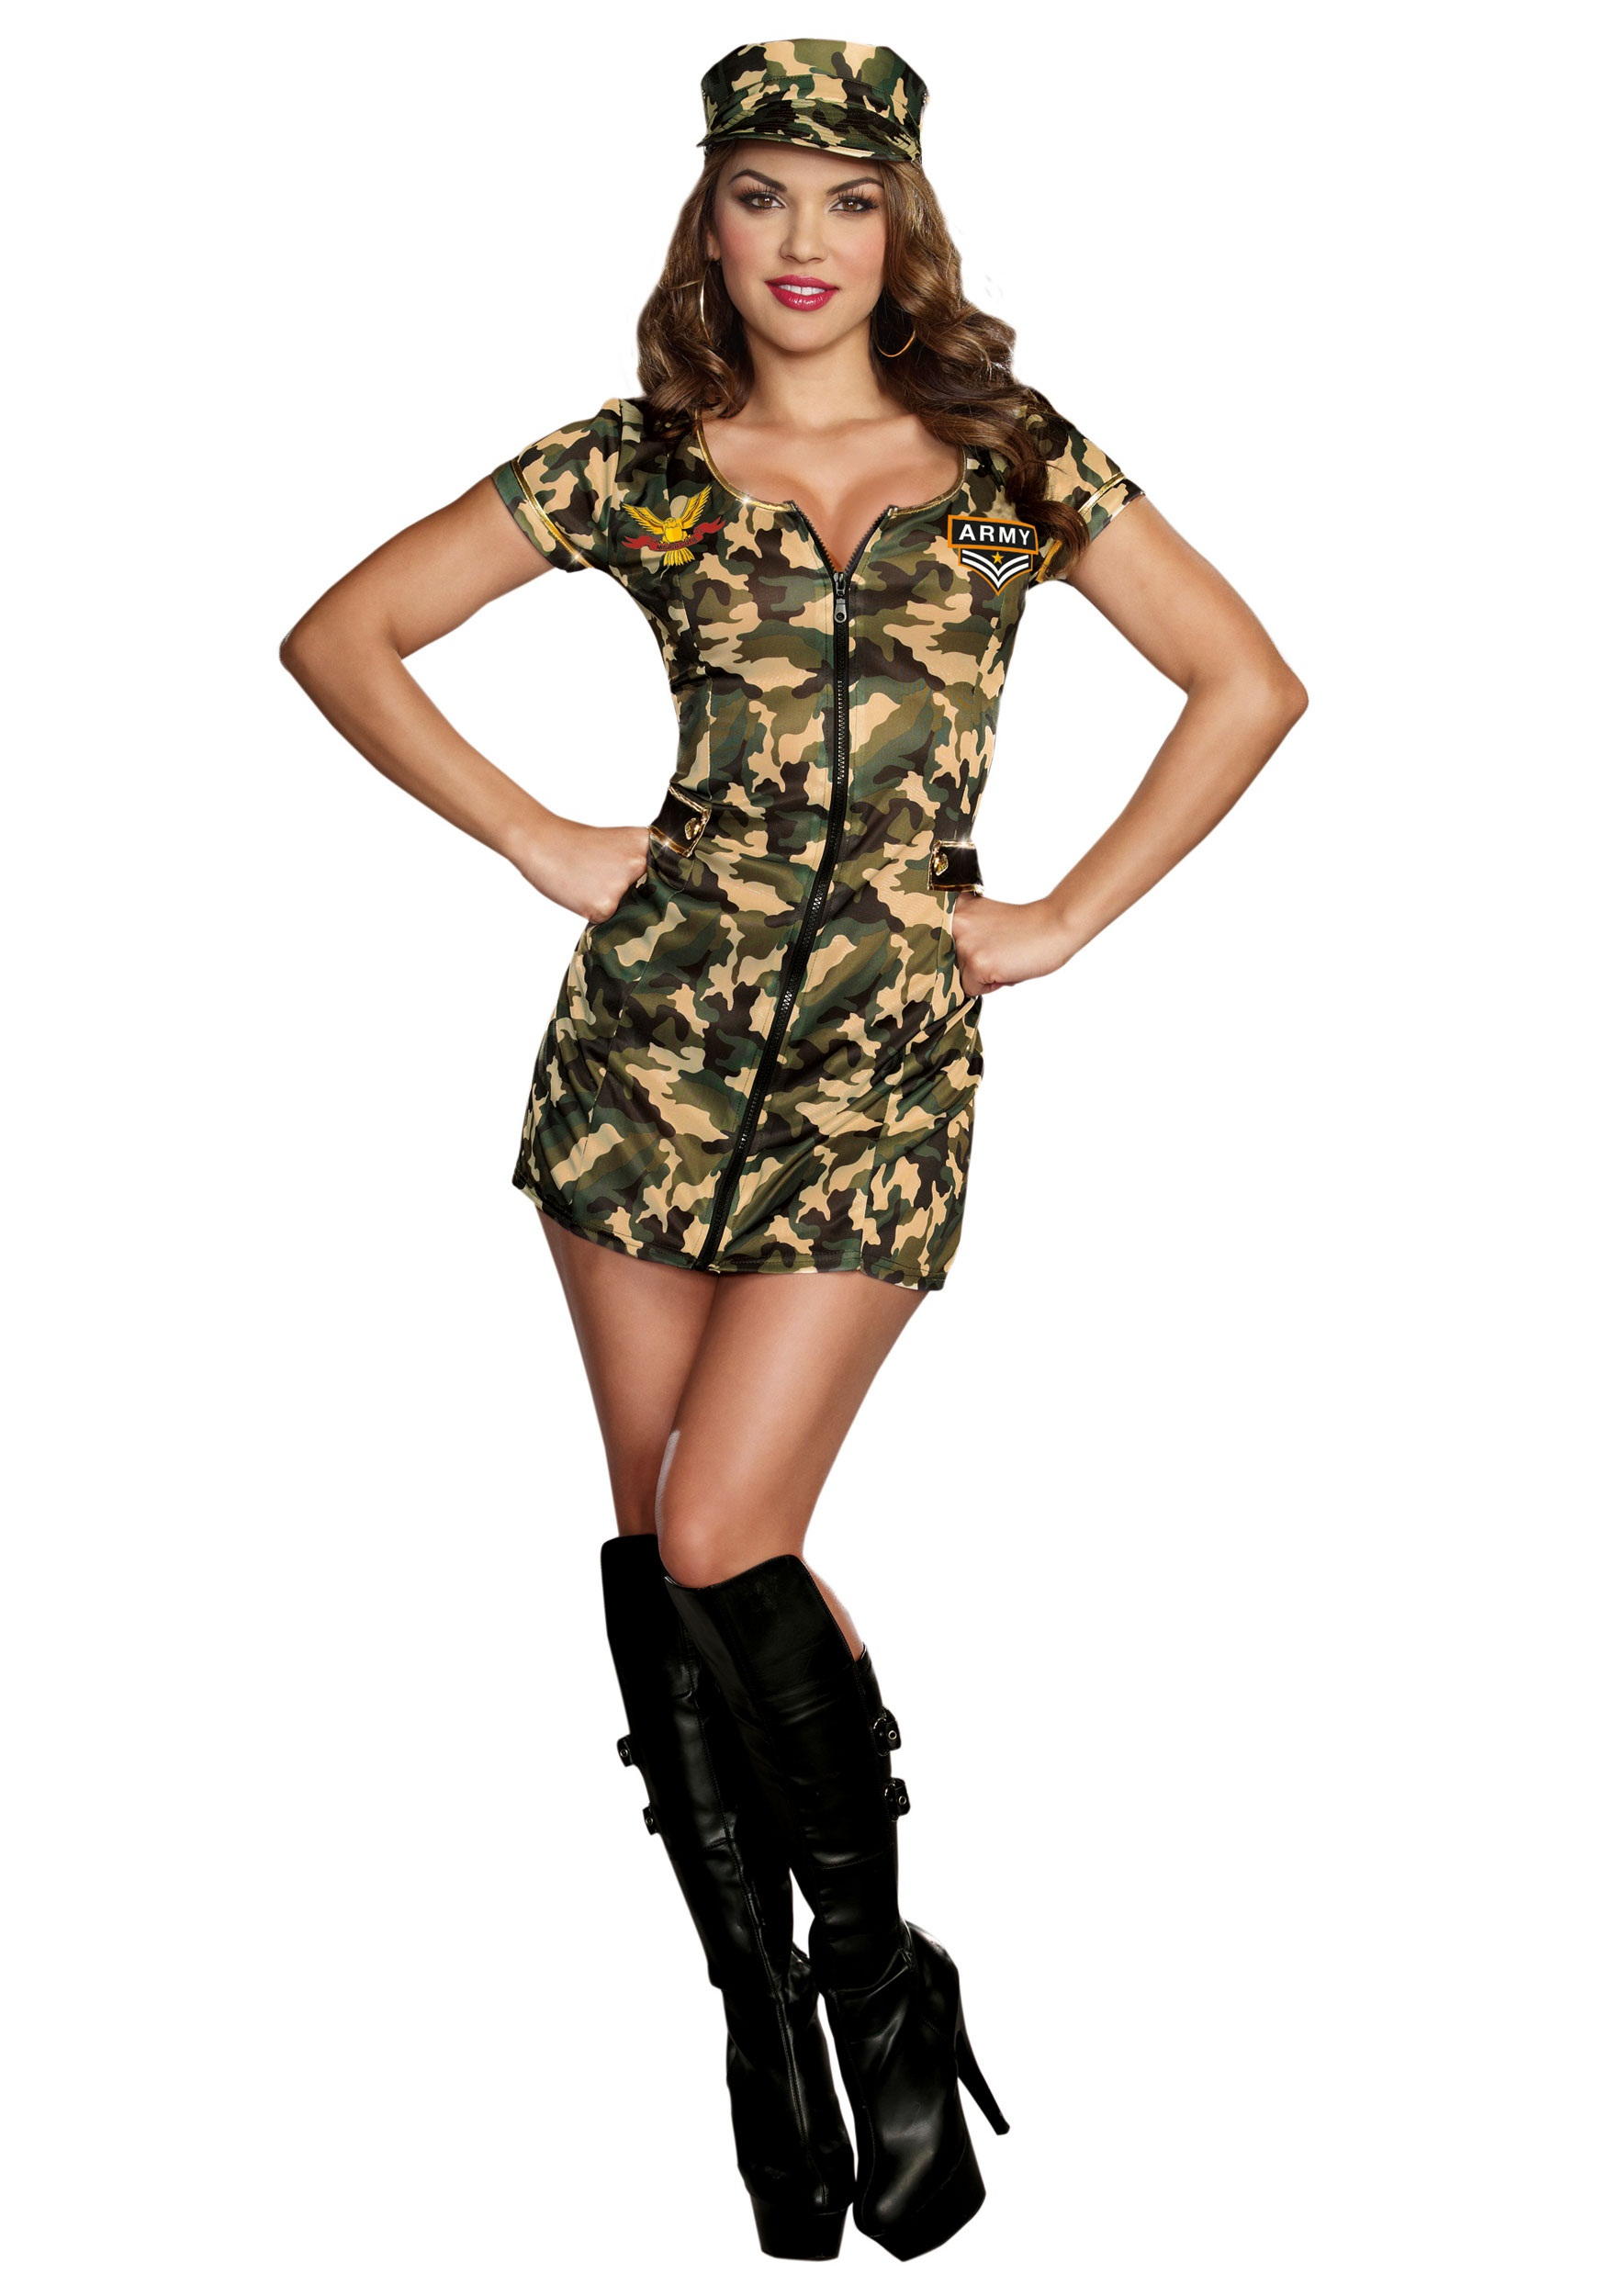 9b7d9495d1b6a Army Lady Costume & Image Is Loading Army-Girl-Costume-Adult-Sexy ...